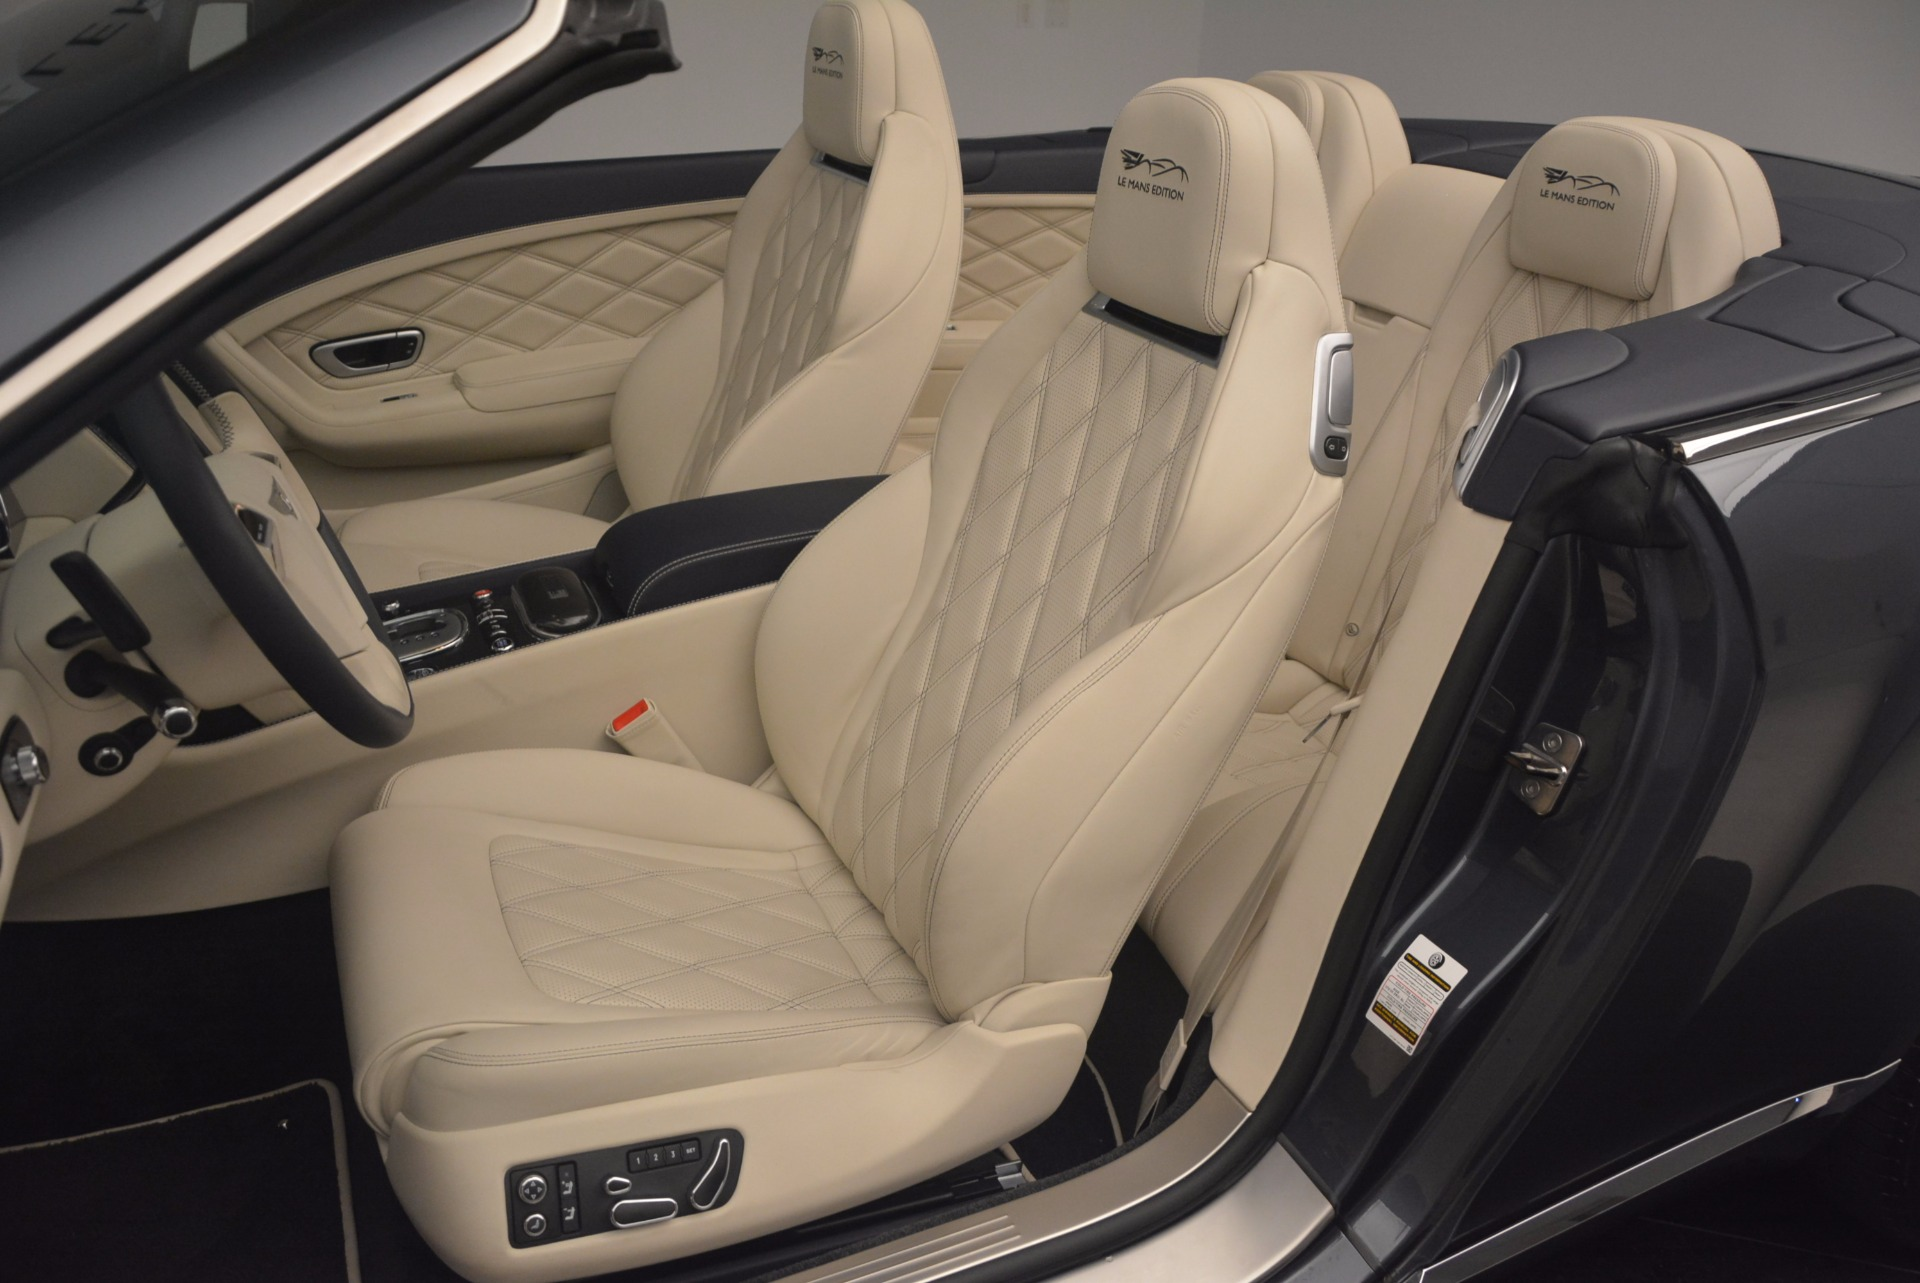 Used 2013 Bentley Continental GT V8 Le Mans Edition, 1 of 48 For Sale In Greenwich, CT 1288_p35